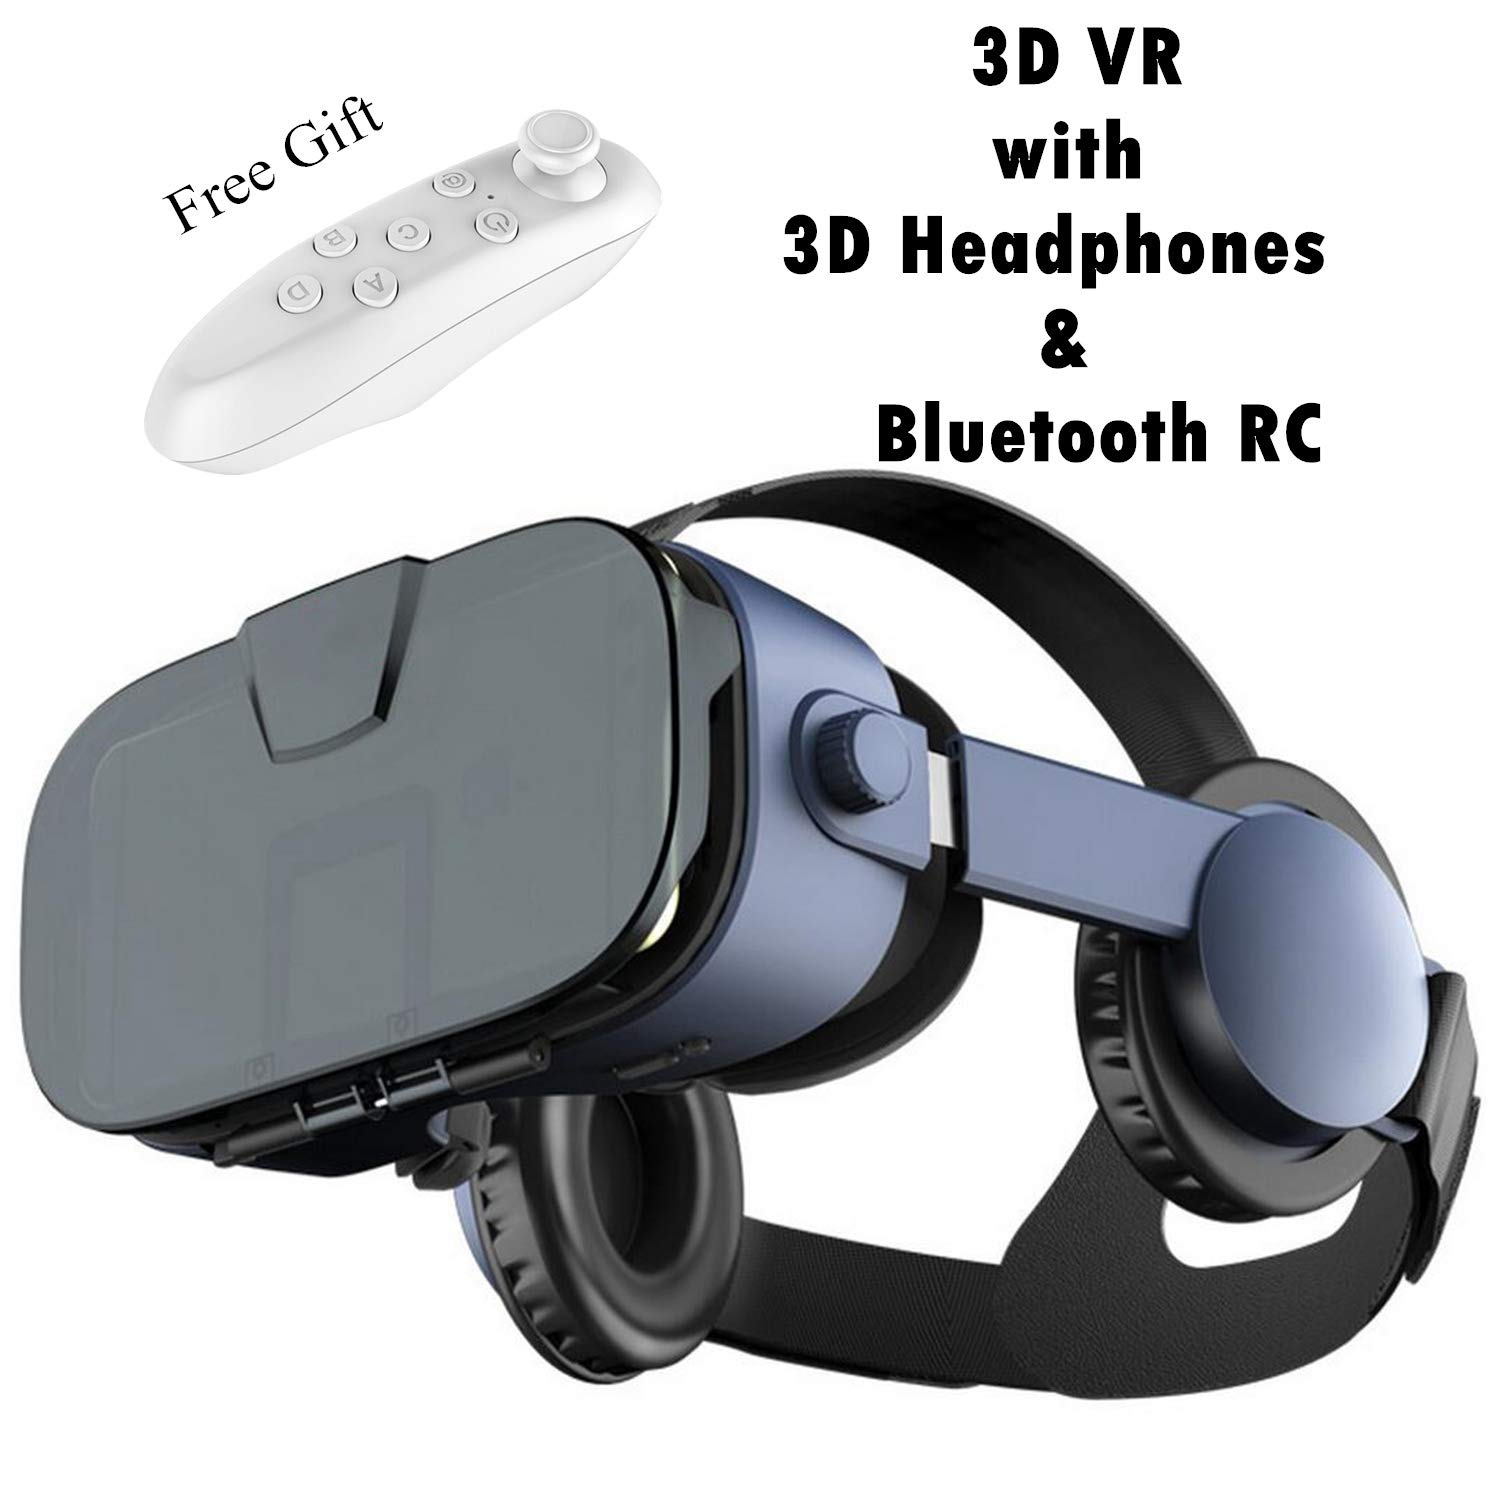 "Virtual Reality Headset, 2018 VR Glasses w/ 3D Headphones &Remote(Gift), 3D IMAX Movie/Game Viewer Compatible for iPhone Xs XR X 8 7 6 S Plus Samsung Galaxy S9 S8 S7 S6 Edge + etc 4.0-6.33"" Cellphone"